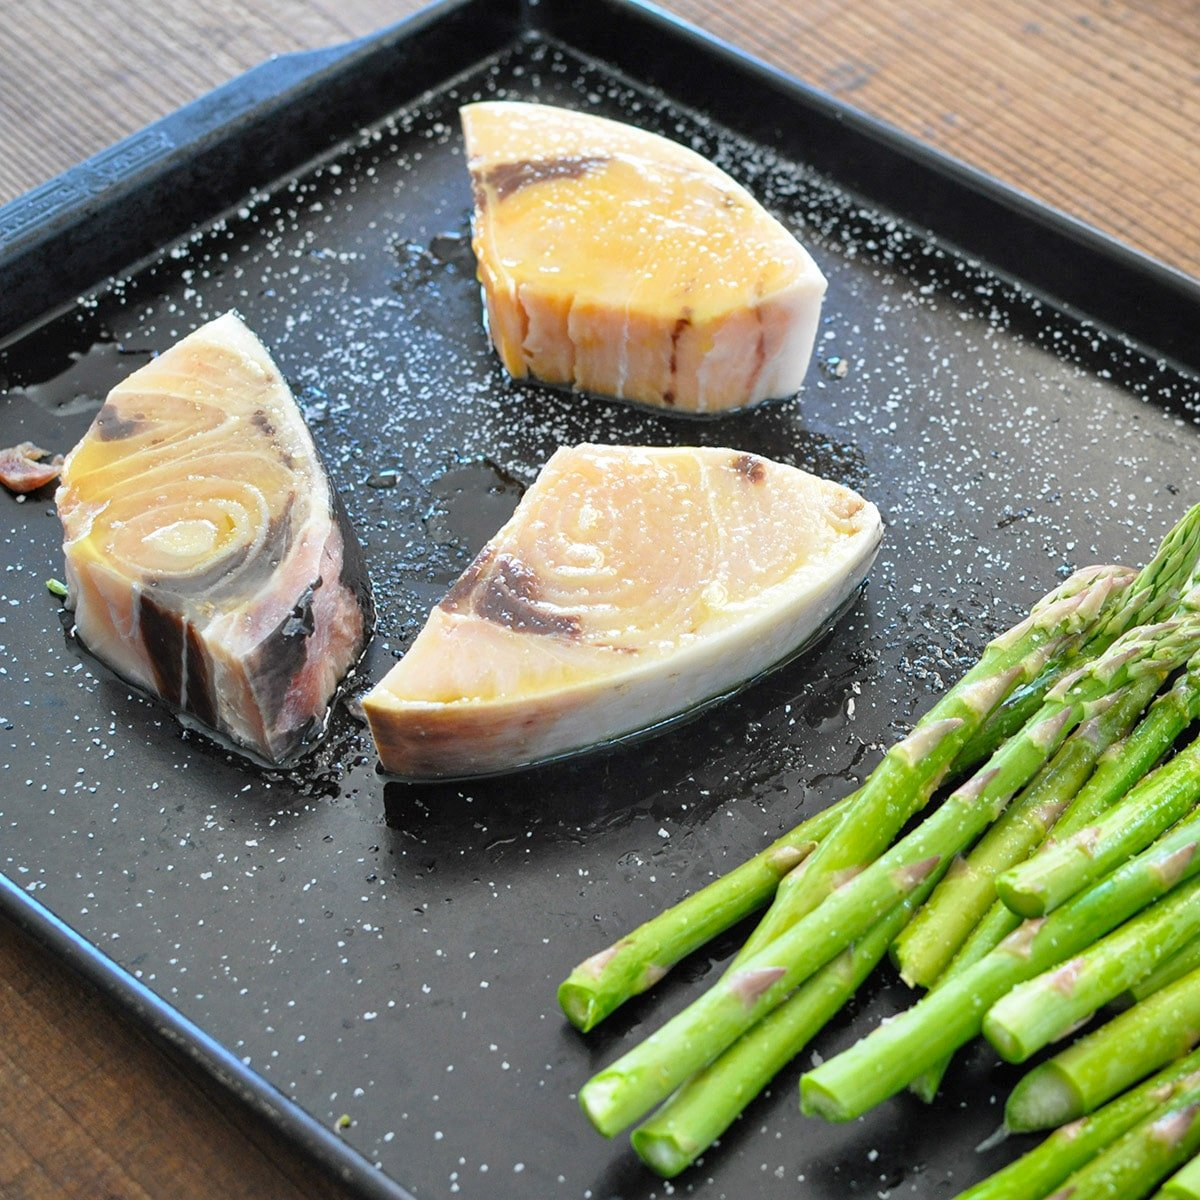 swordfish steaks and asparagus on a dark baking sheet